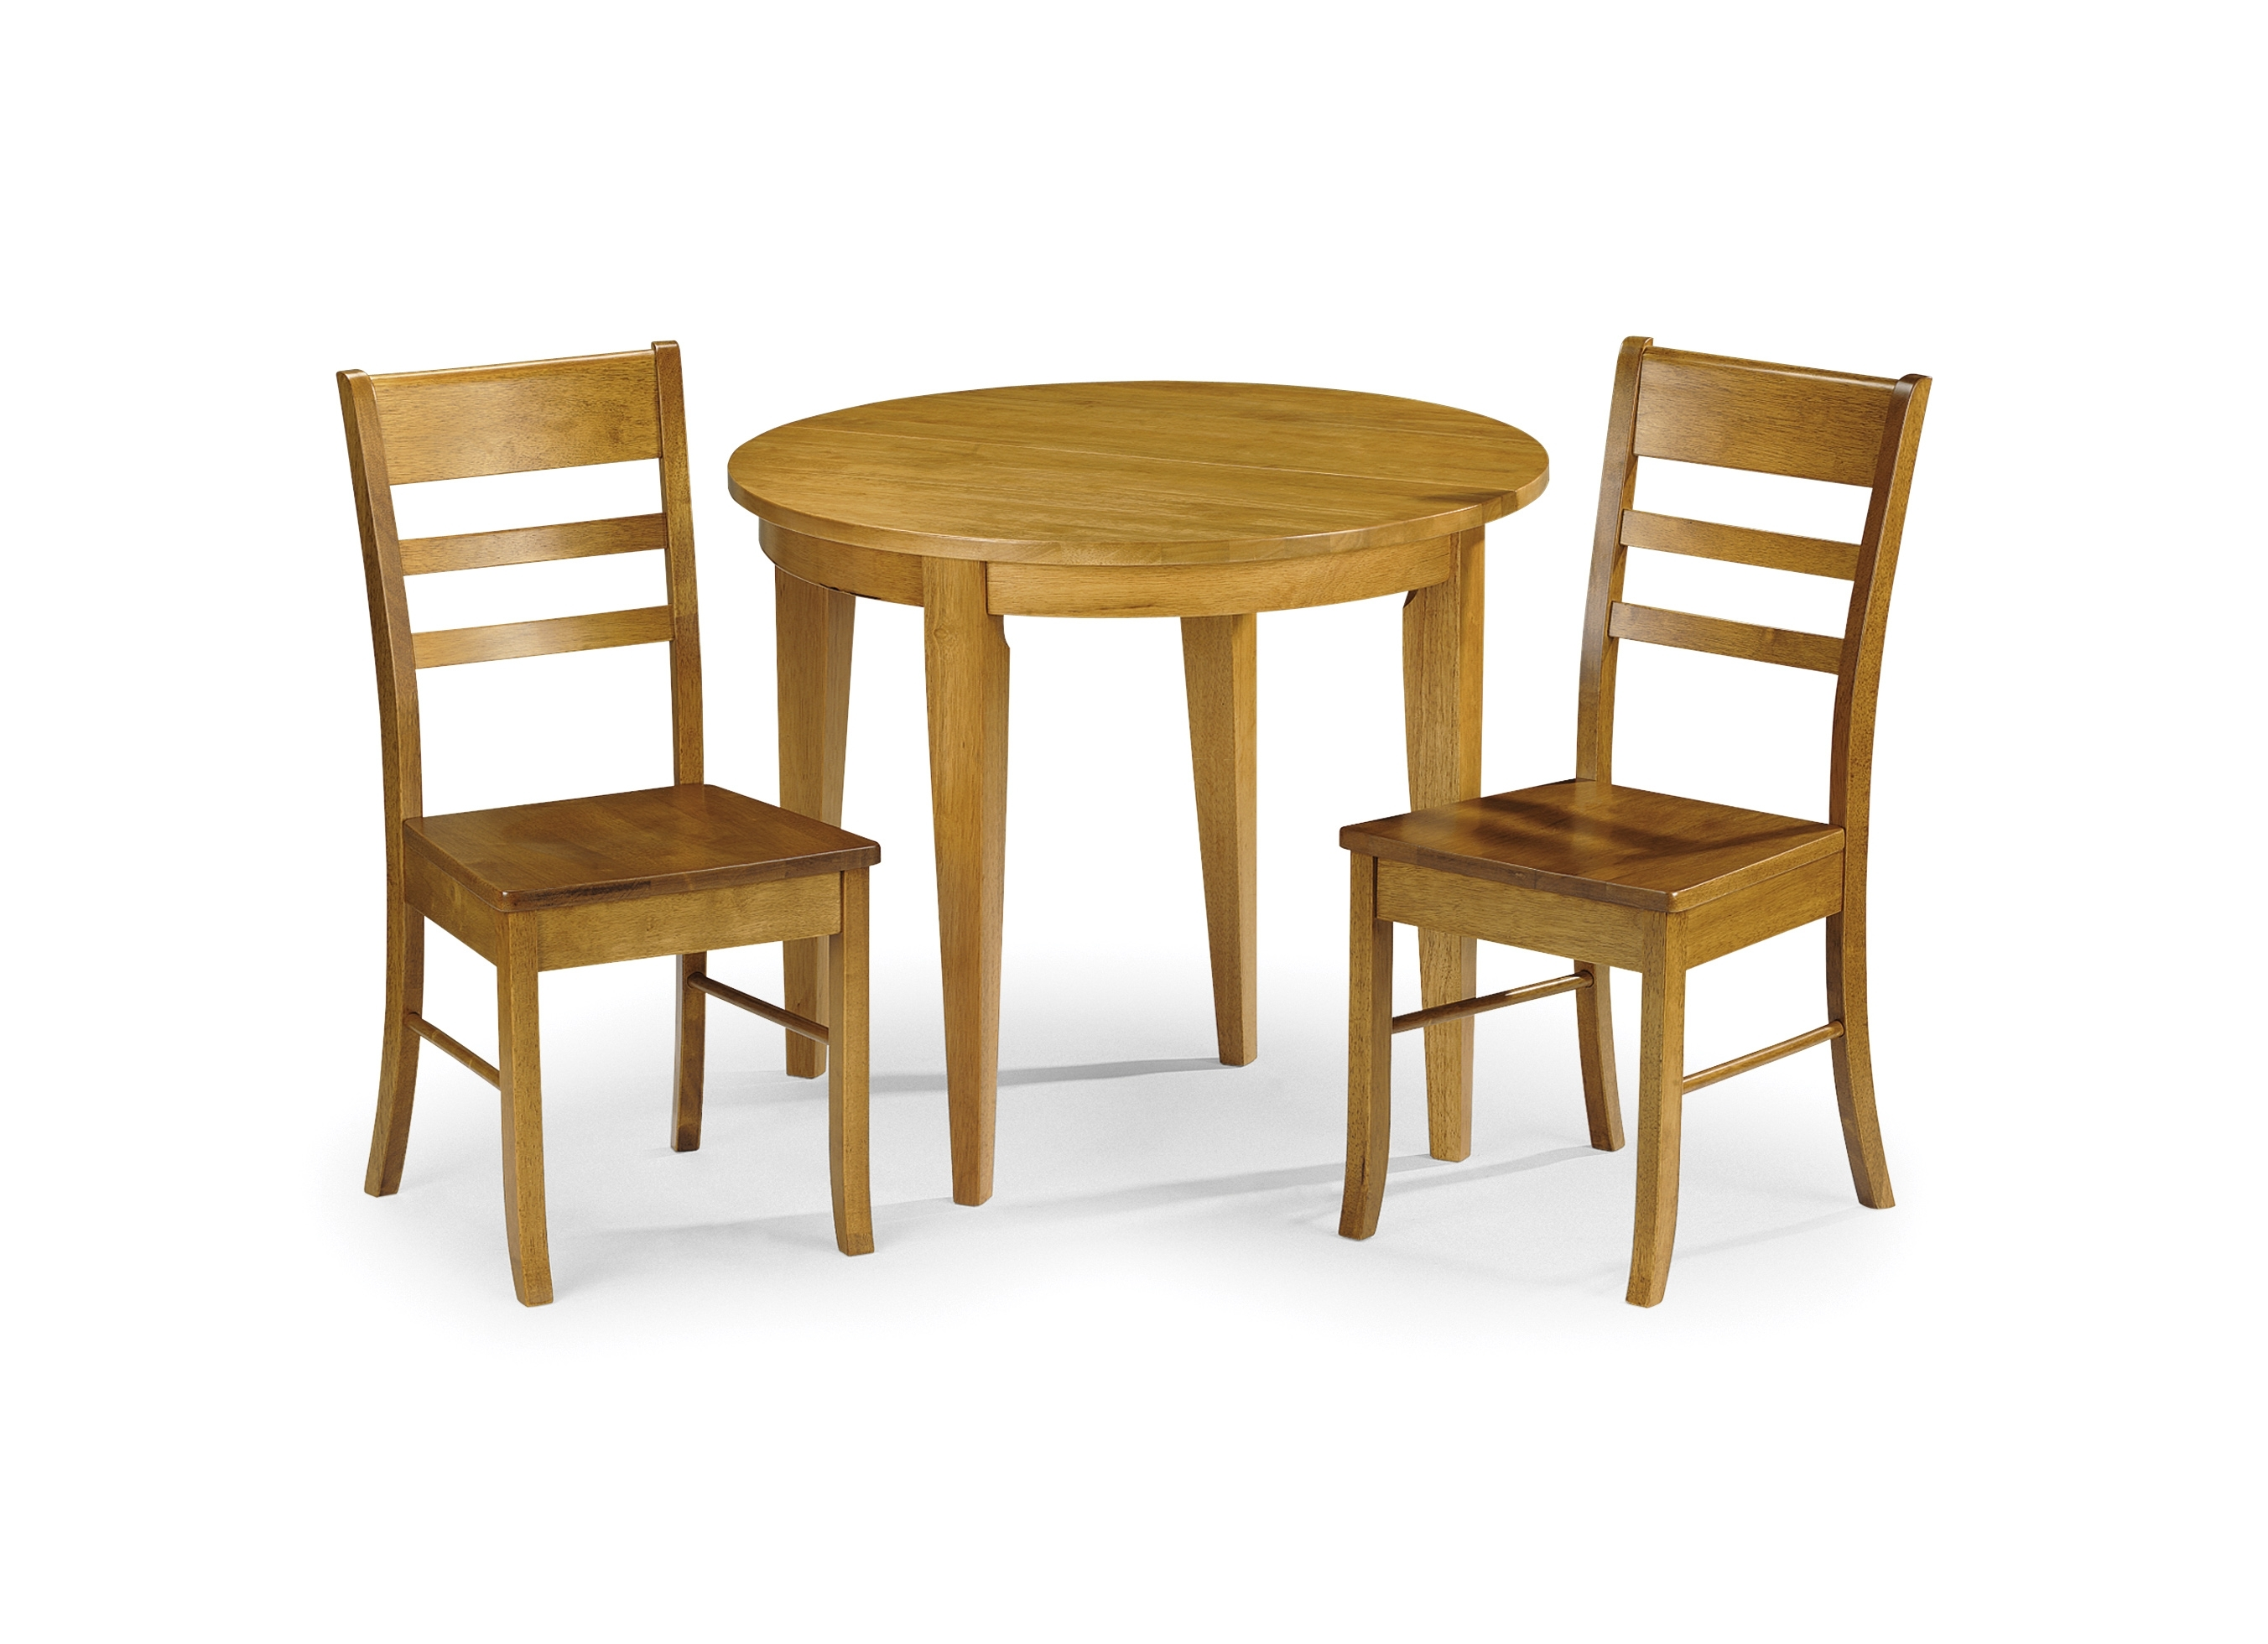 Well Known Julian Bowen Consort Half Moon Dining Table And Chairs In Pine With Half Moon Dining Table Sets (View 8 of 25)